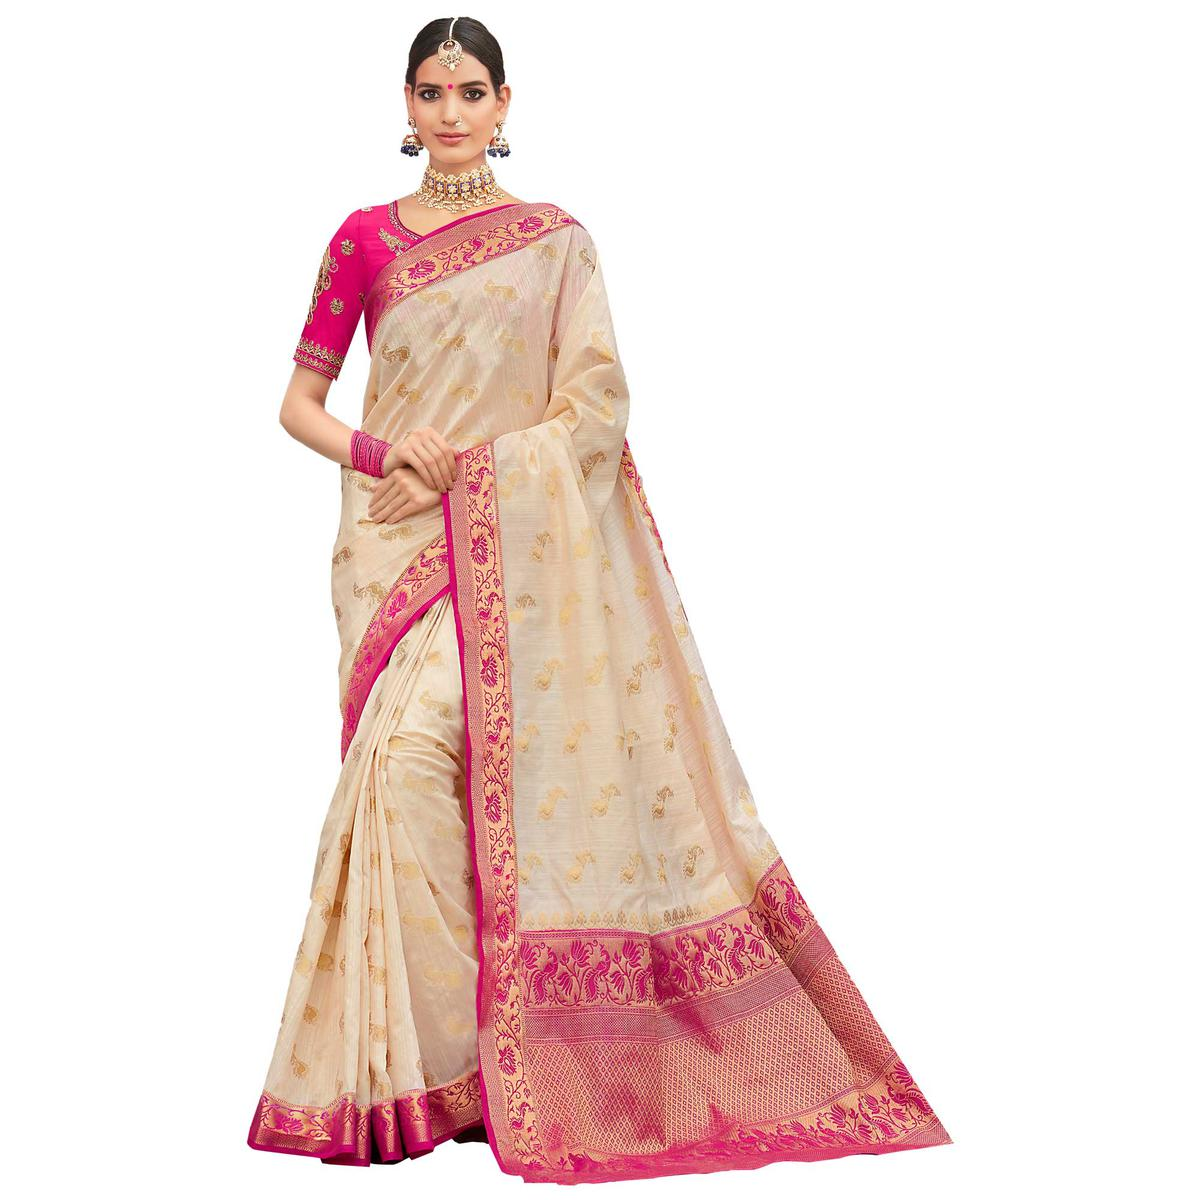 Elegant White-Pink Colored Party Wear Designer Embroidered Woven Banarasi Silk Saree